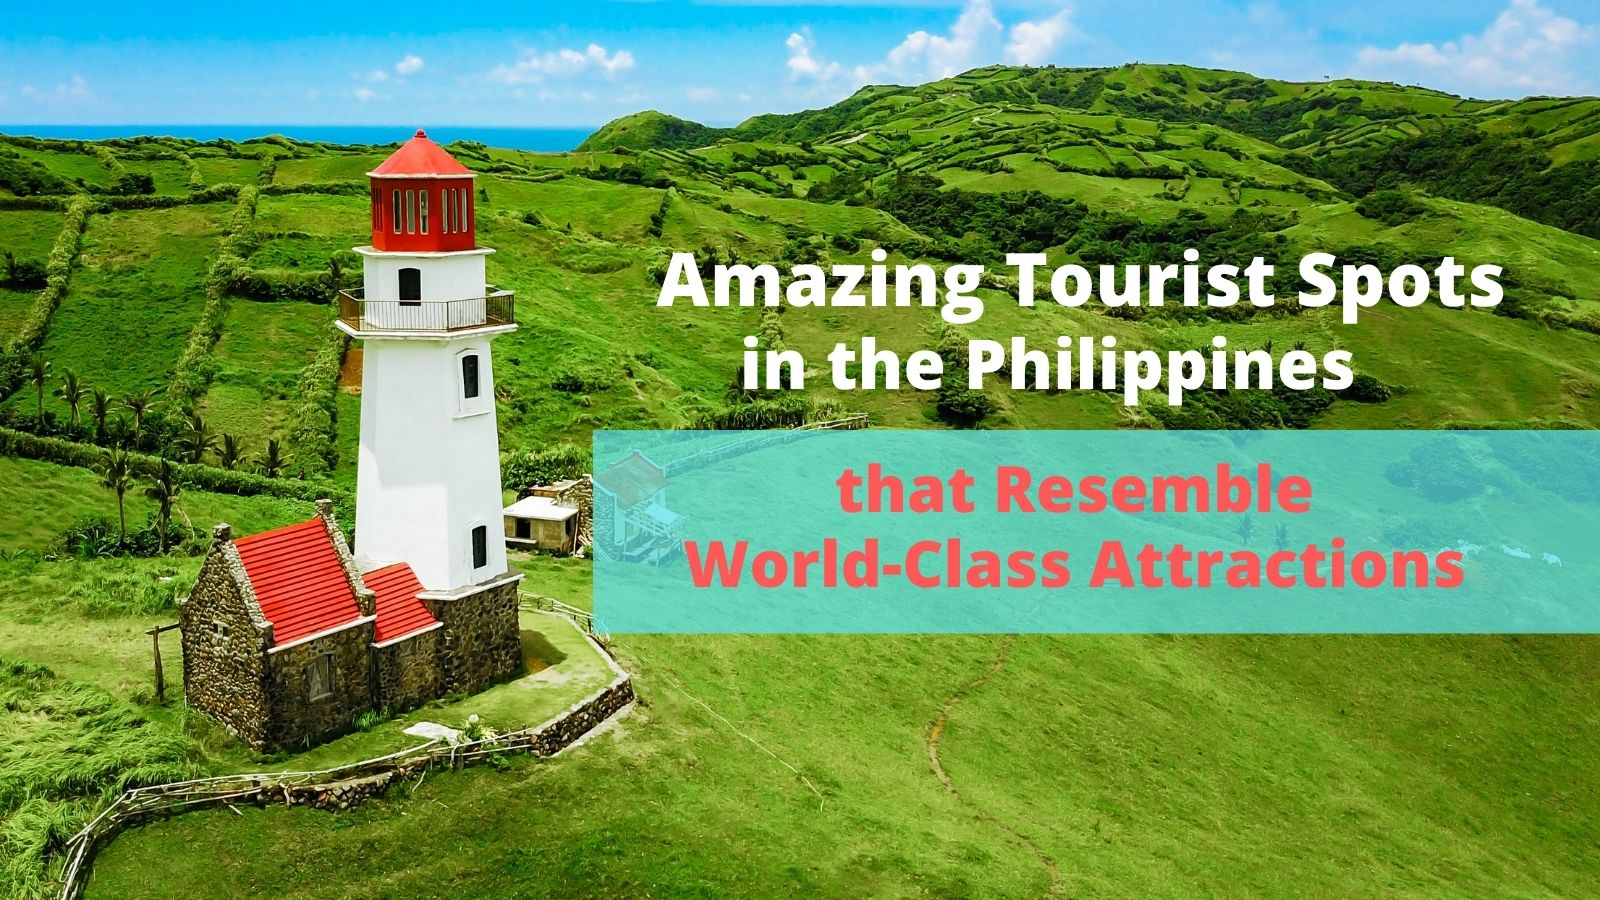 amazing tourist spots philippines that look like world class attractions